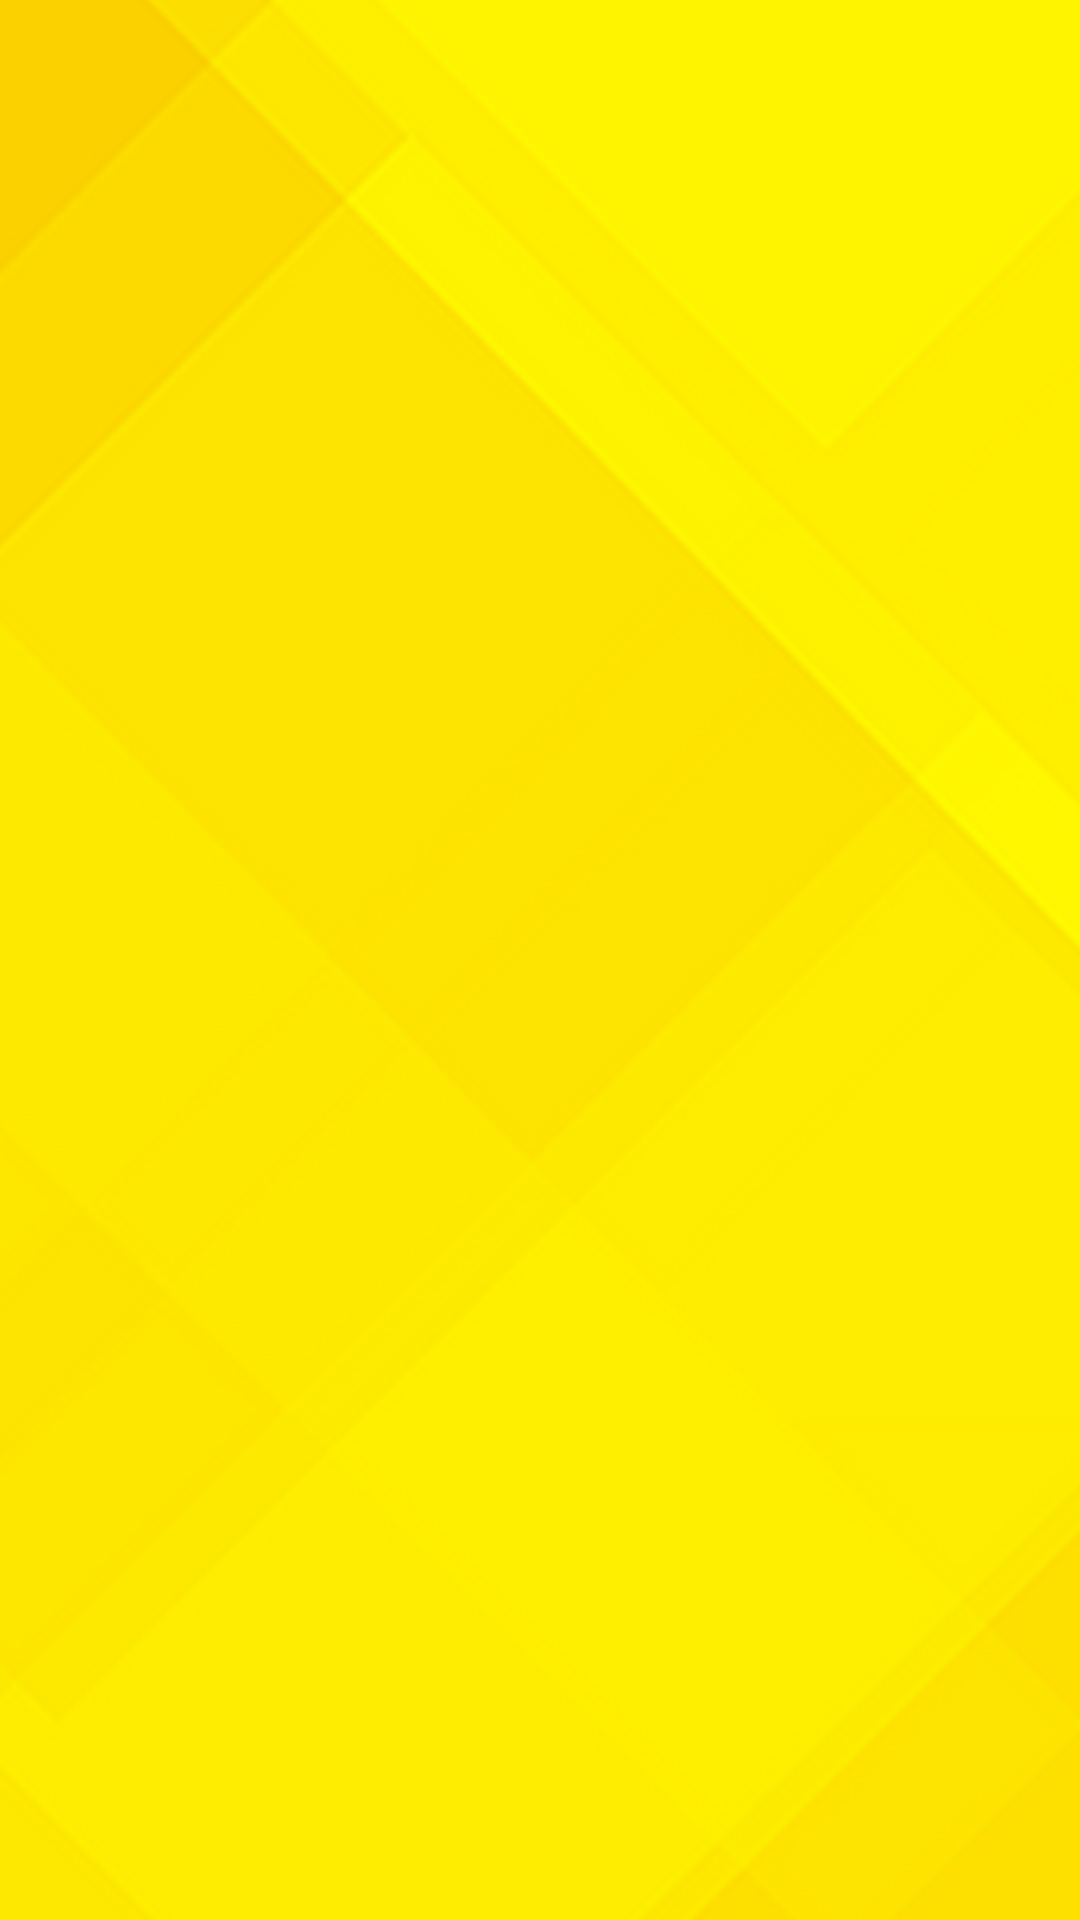 Yellow Design Wallpaper Light Background, Color, Art ...